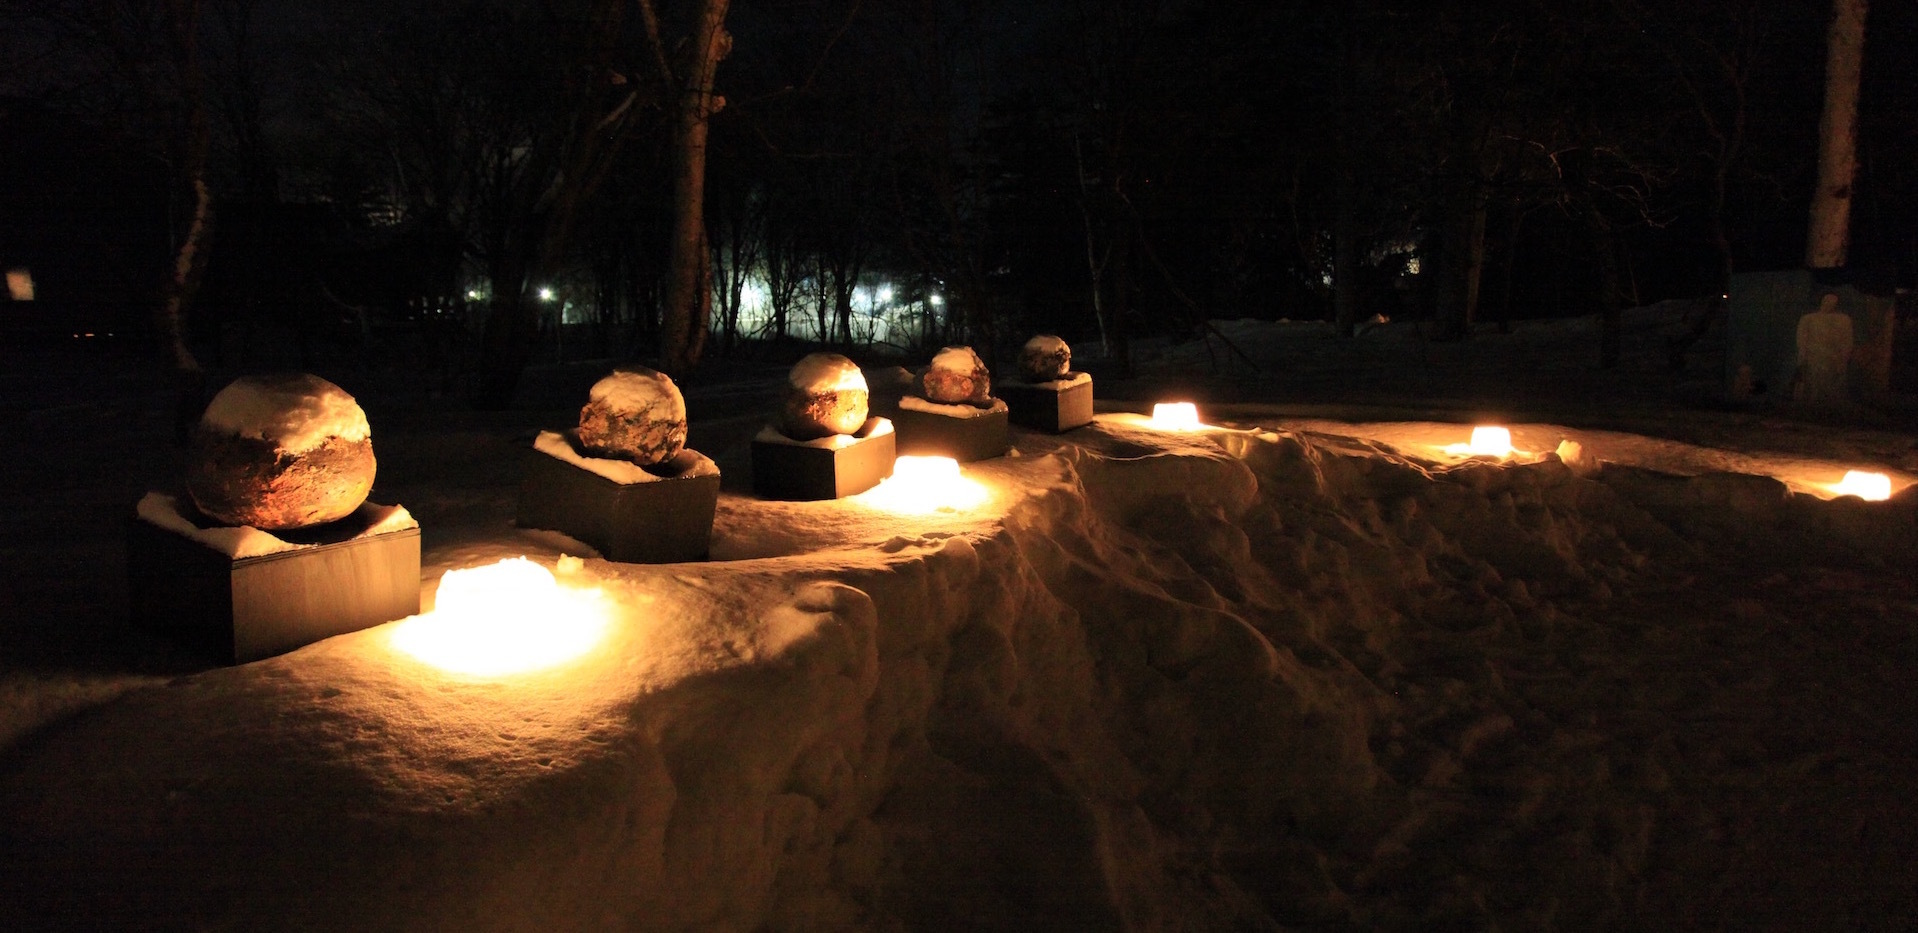 The collaboration of art works and snow light